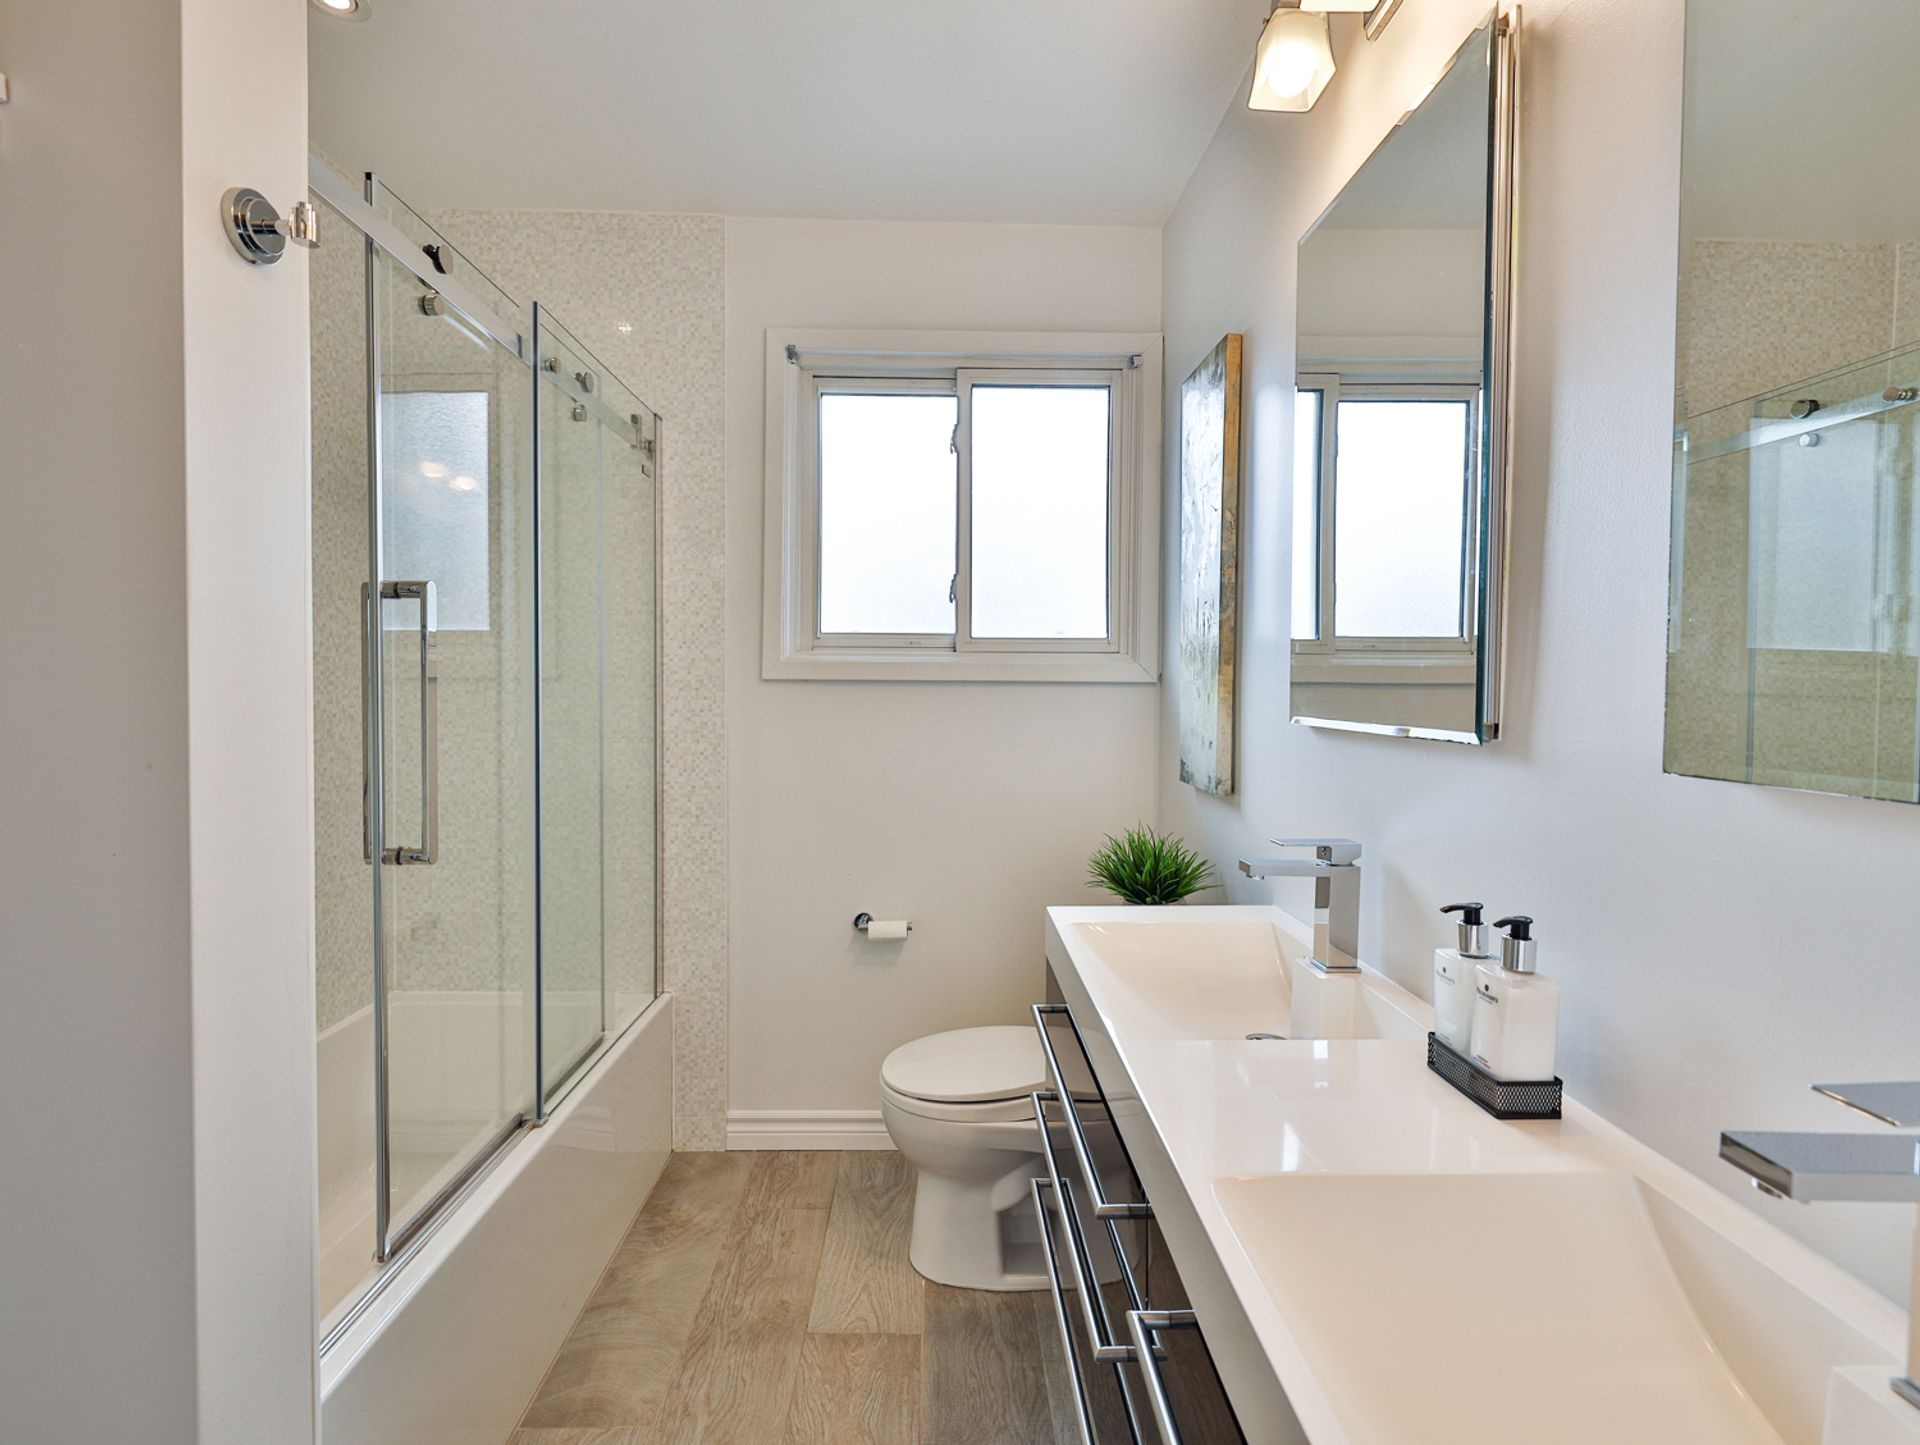 5 Piece Bathroom at 62 Overbank Crescent, Parkwoods-Donalda, Toronto